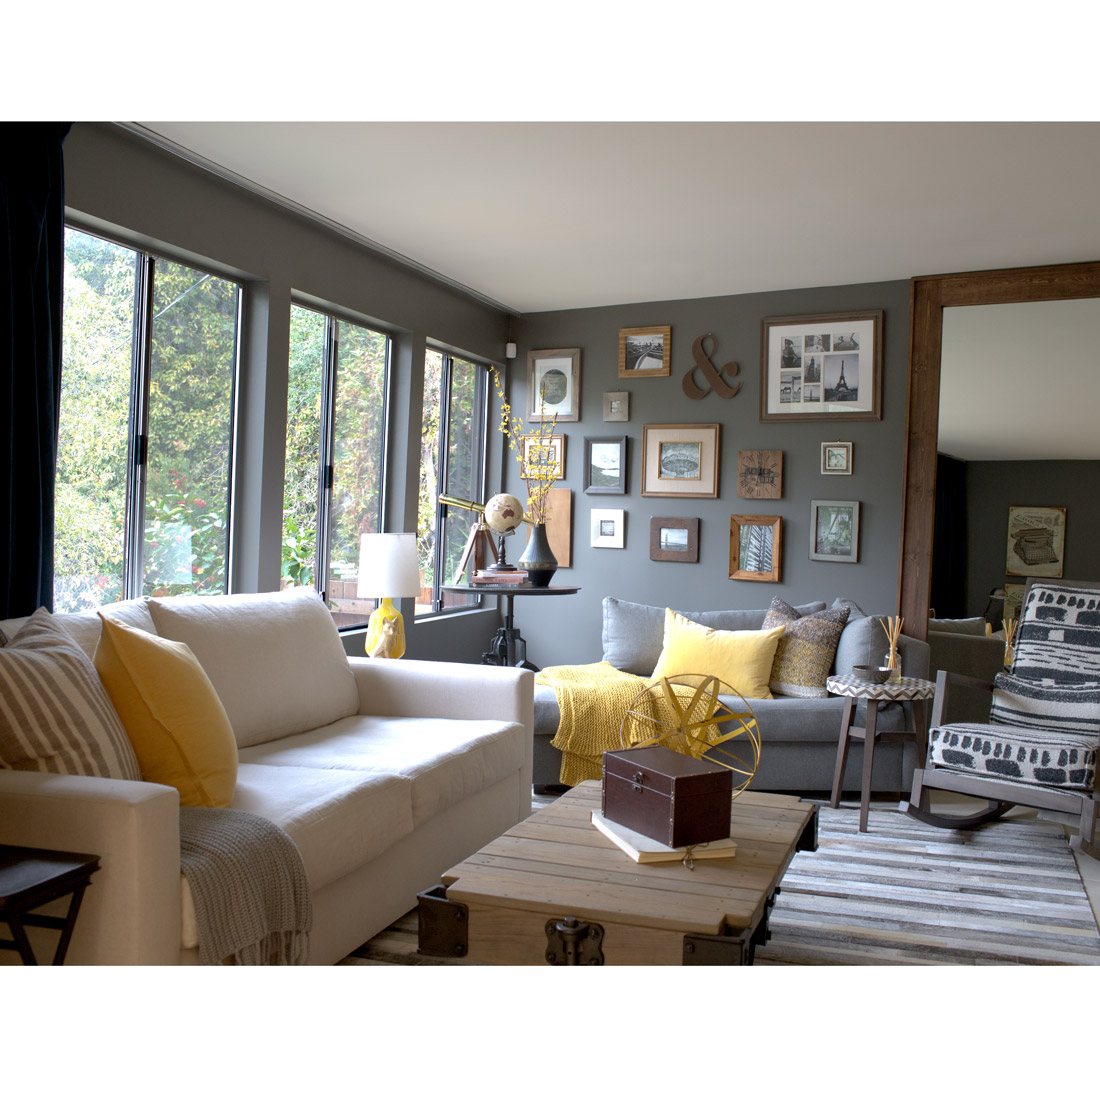 family room tv watching with linen sofa and upholstered rocking chair and very large mirror to expand the space dark grey walls create a cozy environment and a nice gallery wall to display pictures rustic wood coffee table and cow hide rug with yellow and grey colors design by sara bates interior design